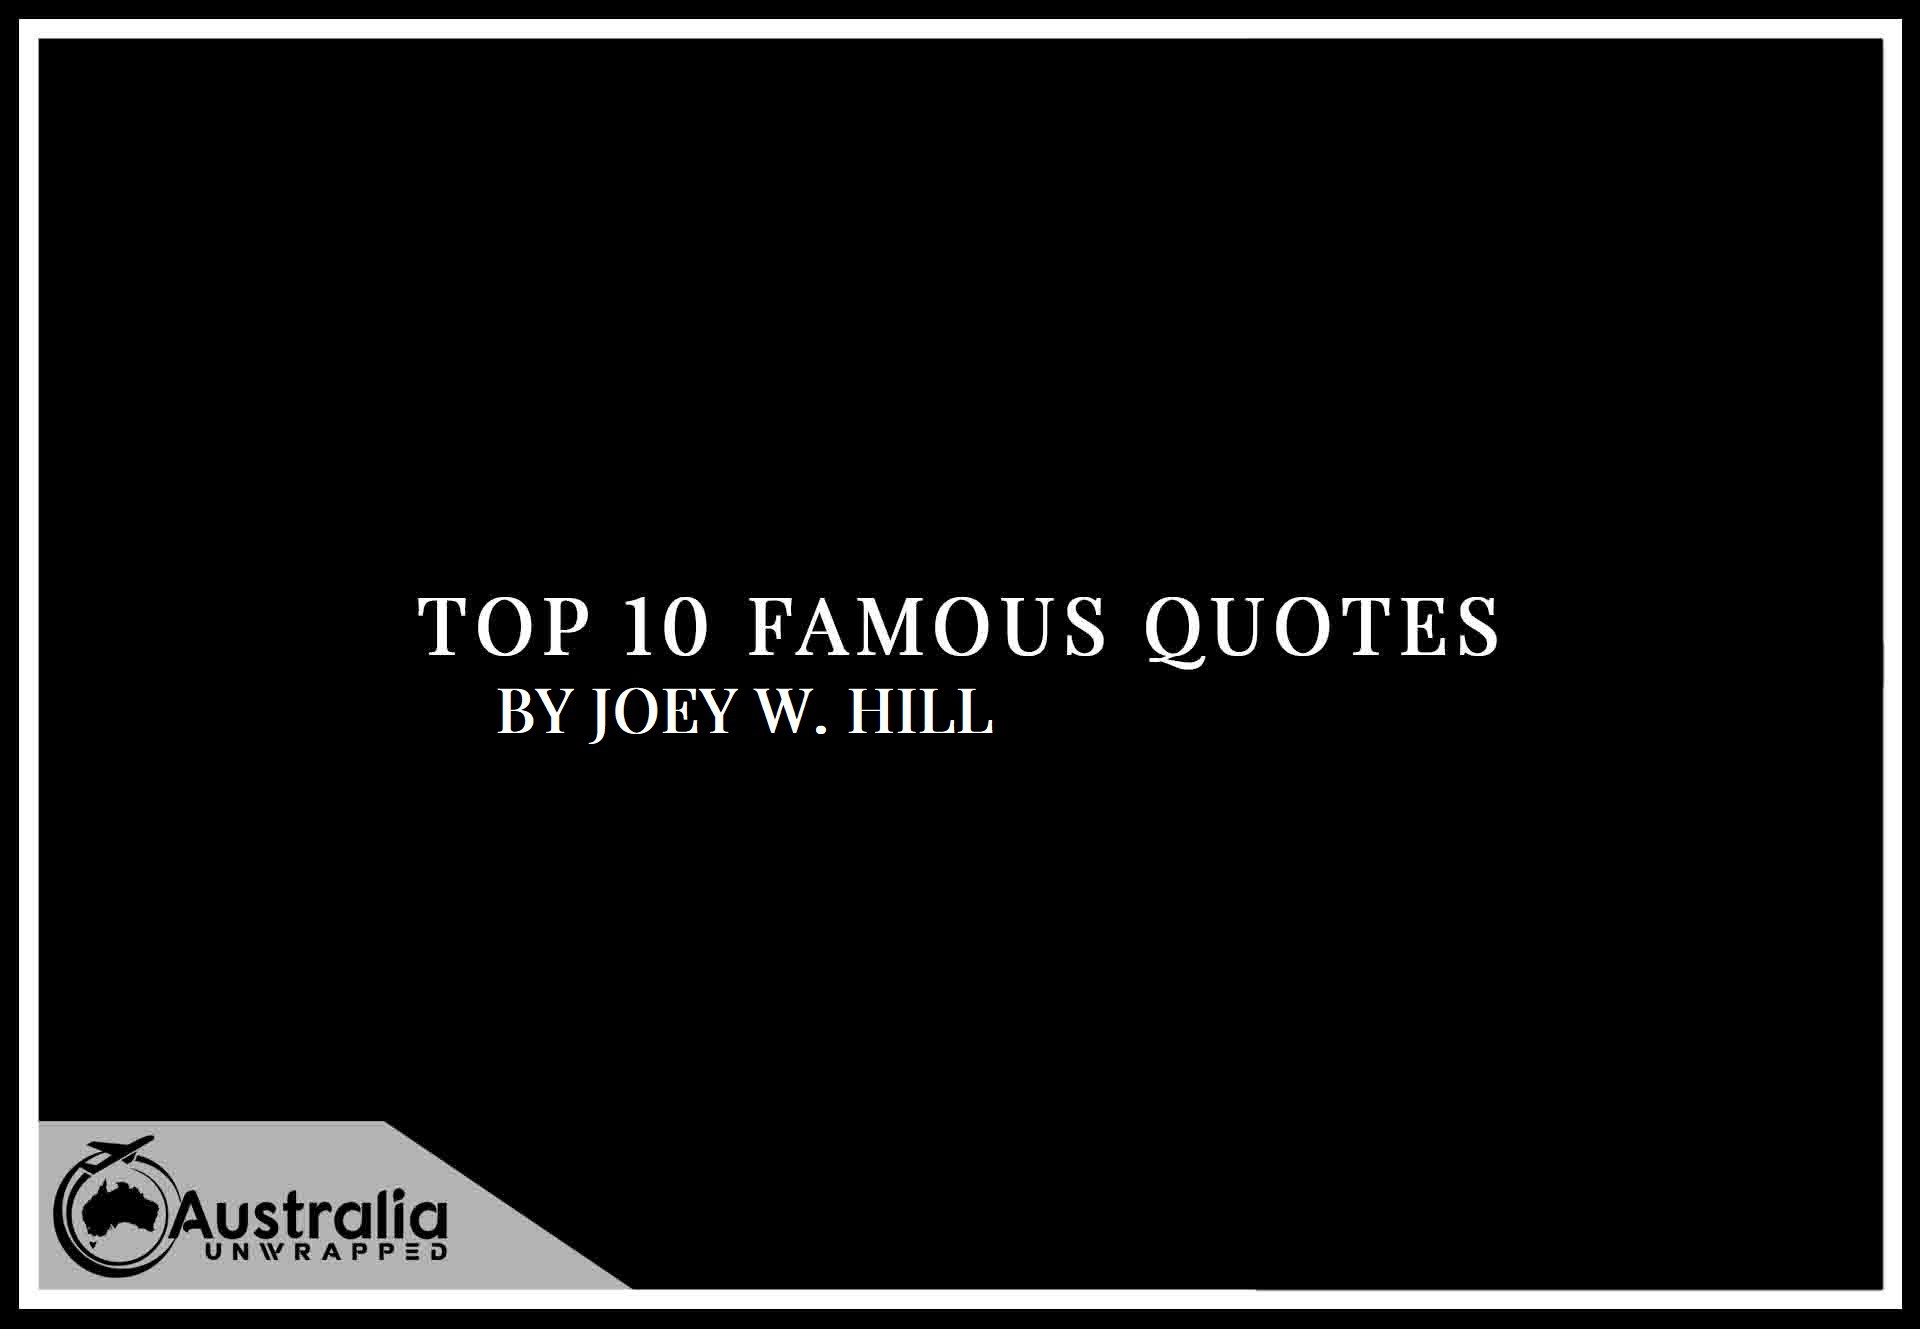 Top 10 Famous Quotes by Author Joey W. Hill